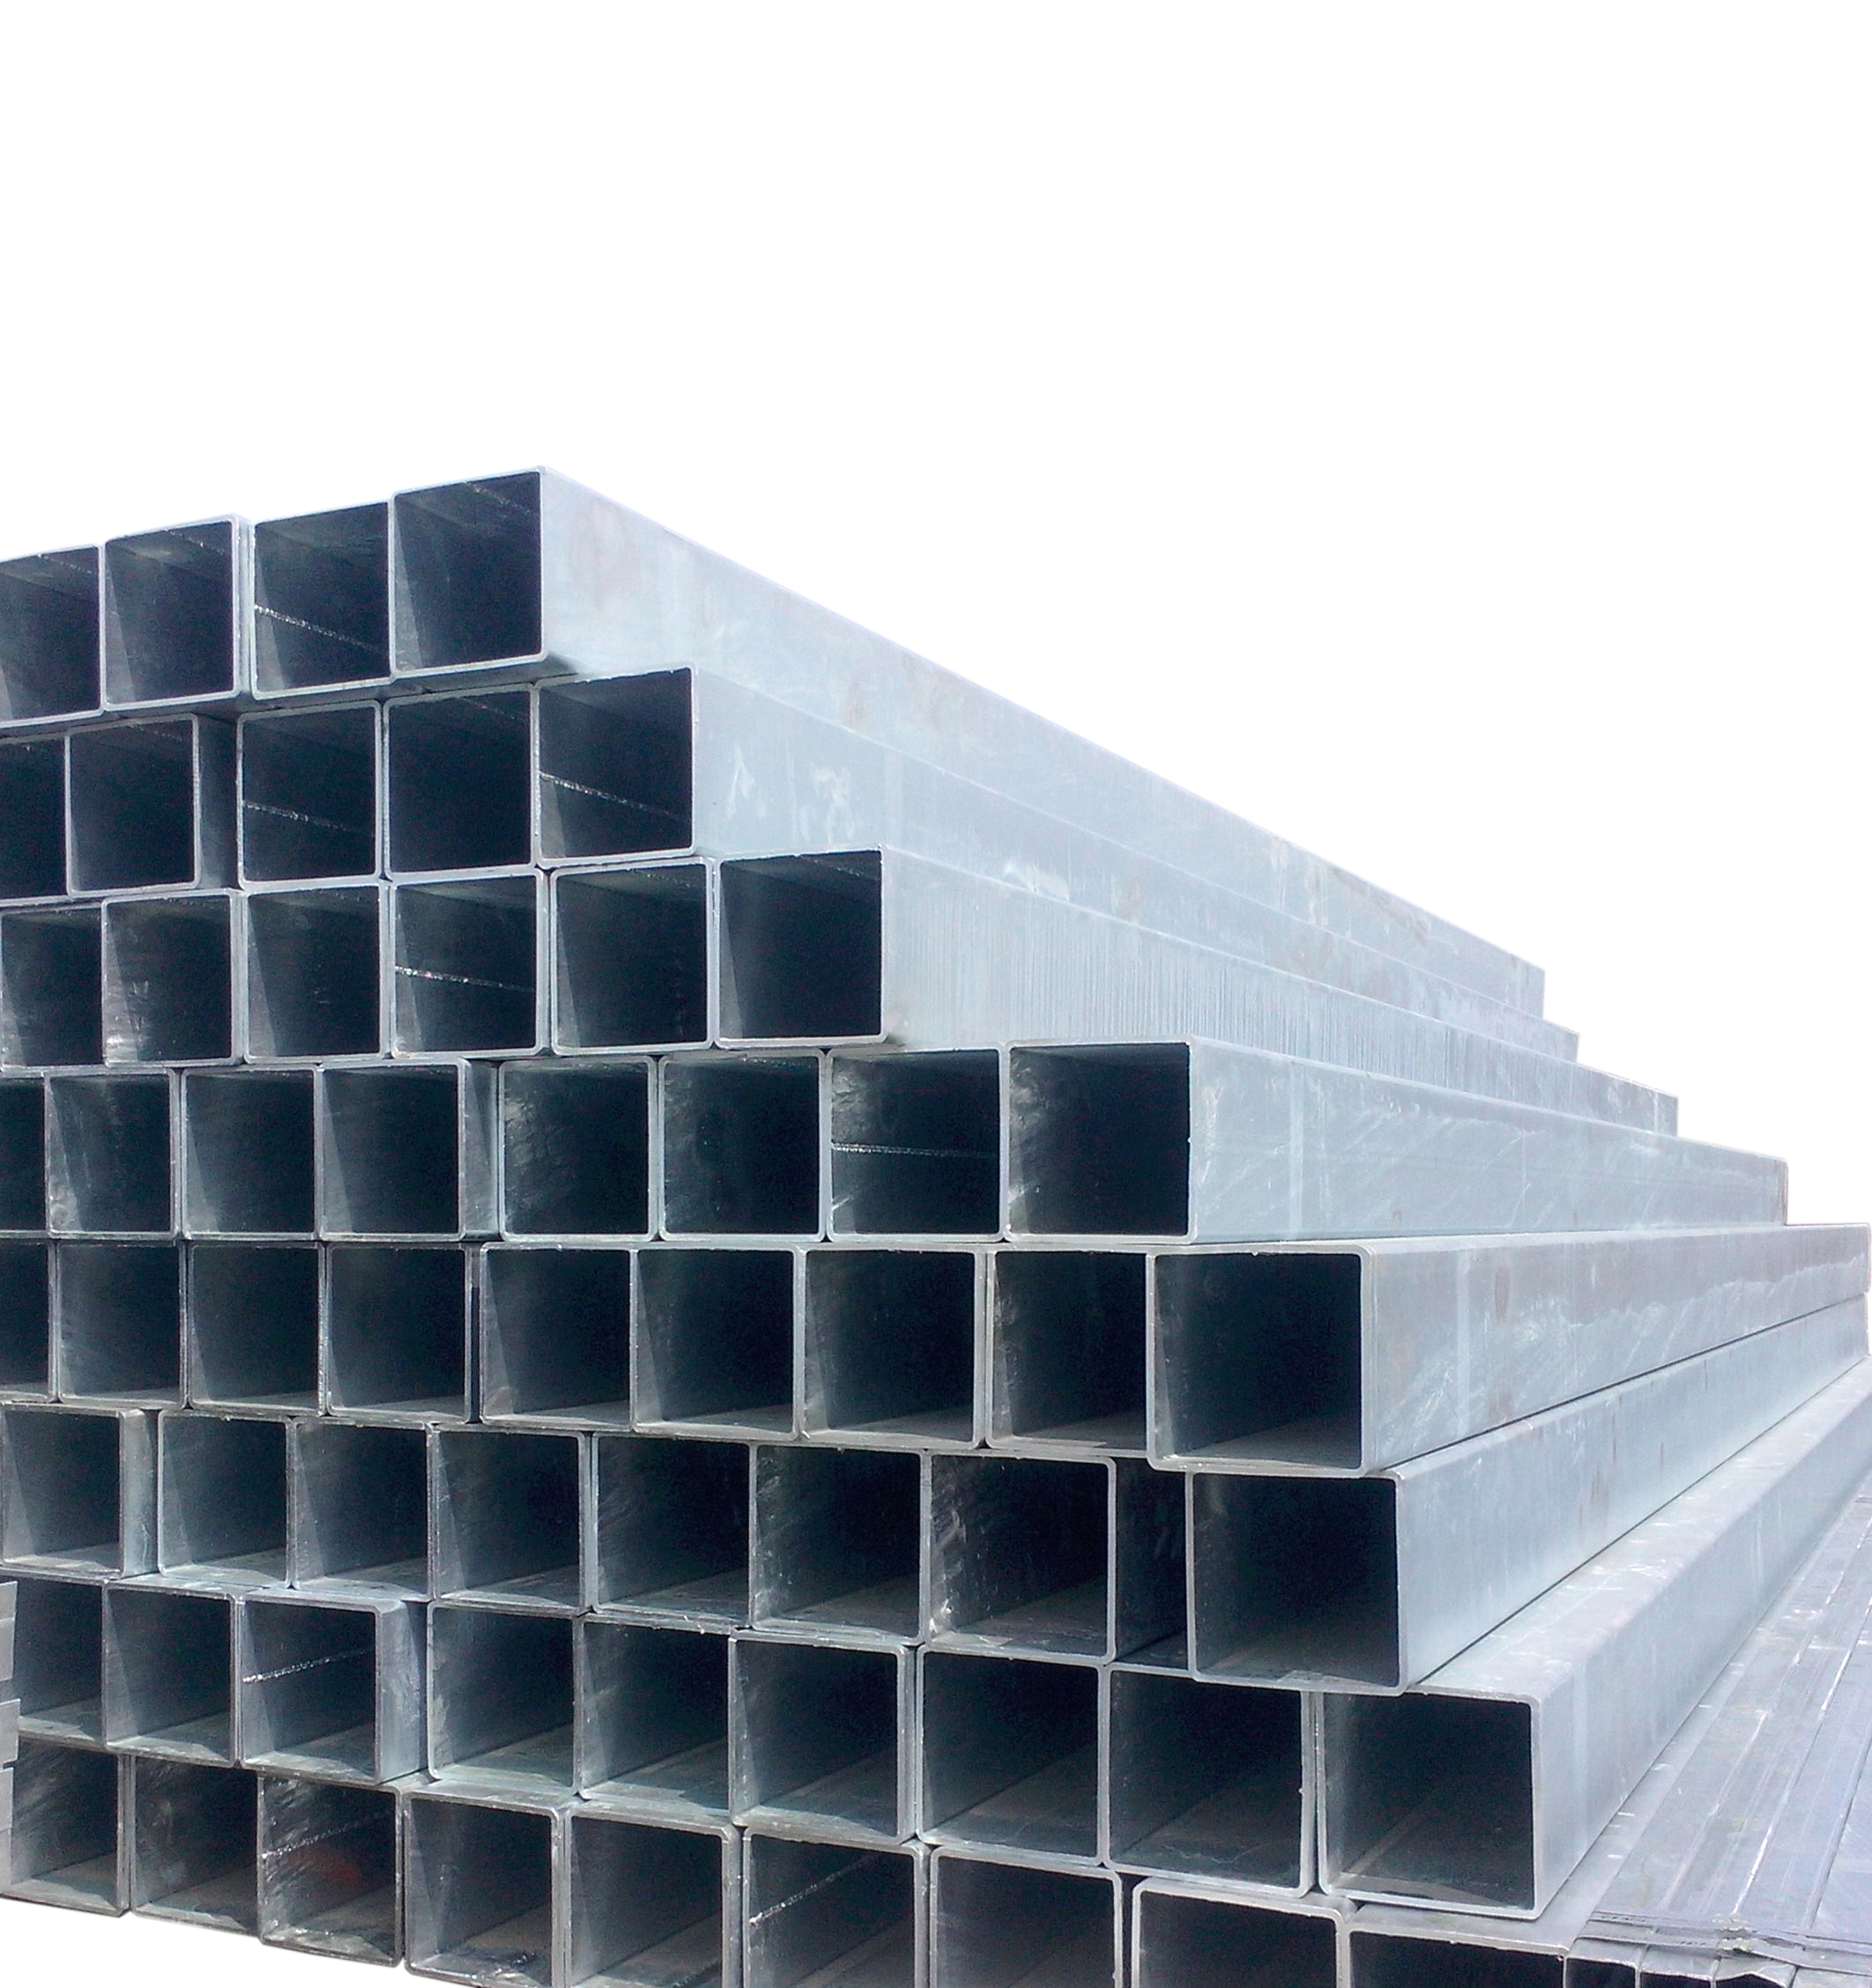 50*50mm square galvanized steel fence posts